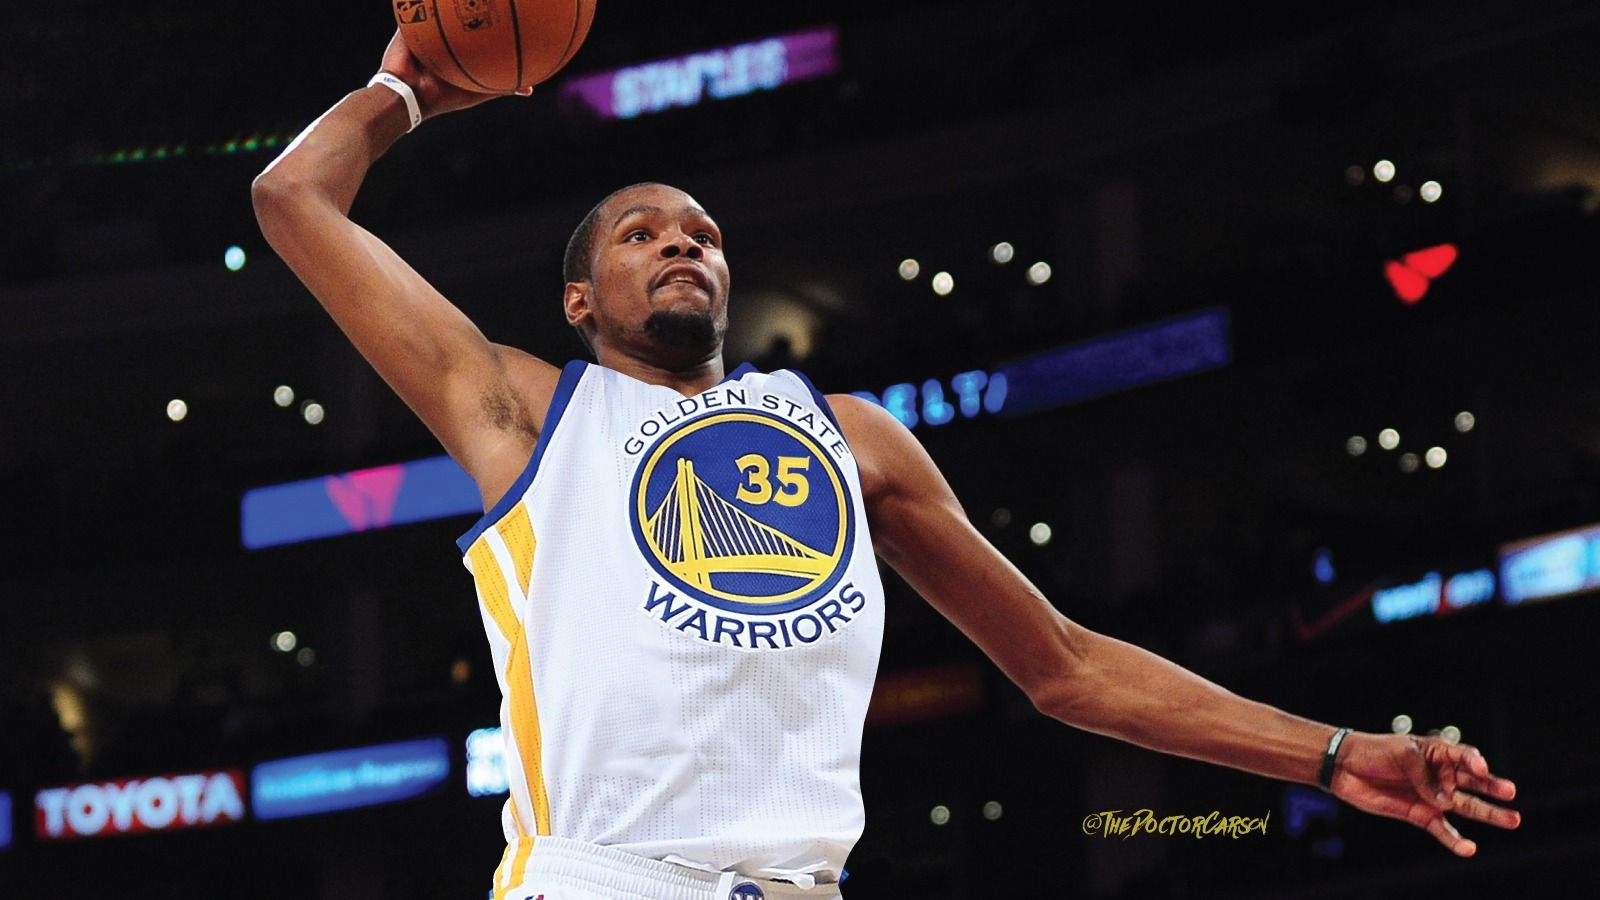 1600x900 Wallpaper of Kevin Durant Golden Gate Warriors 3 - Media file ...